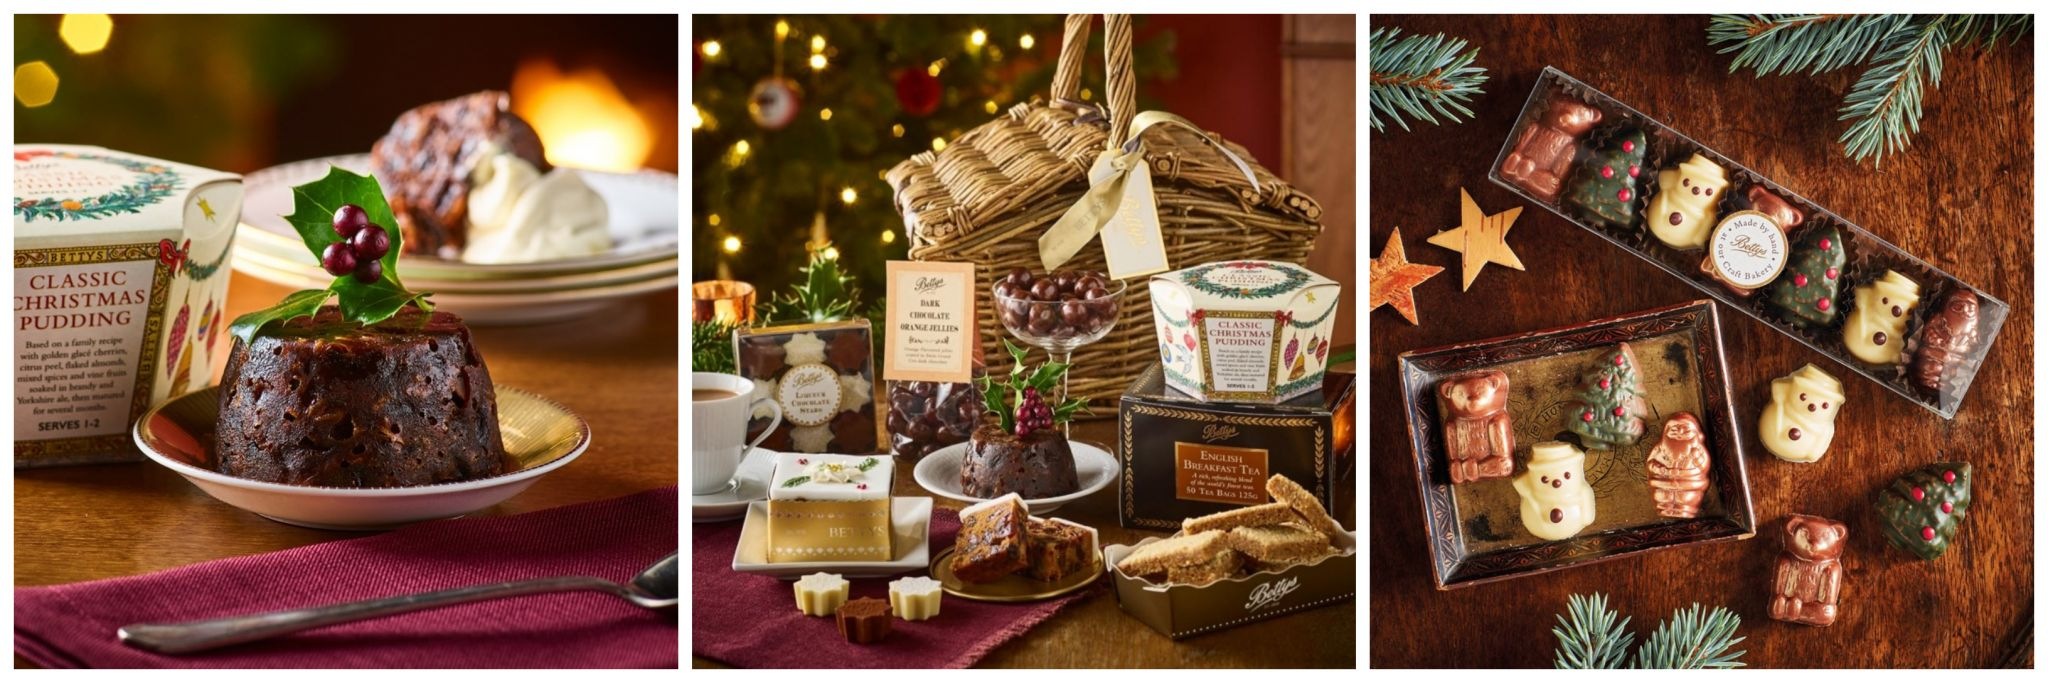 Christmas gift ideas from Yorkshire Bettys